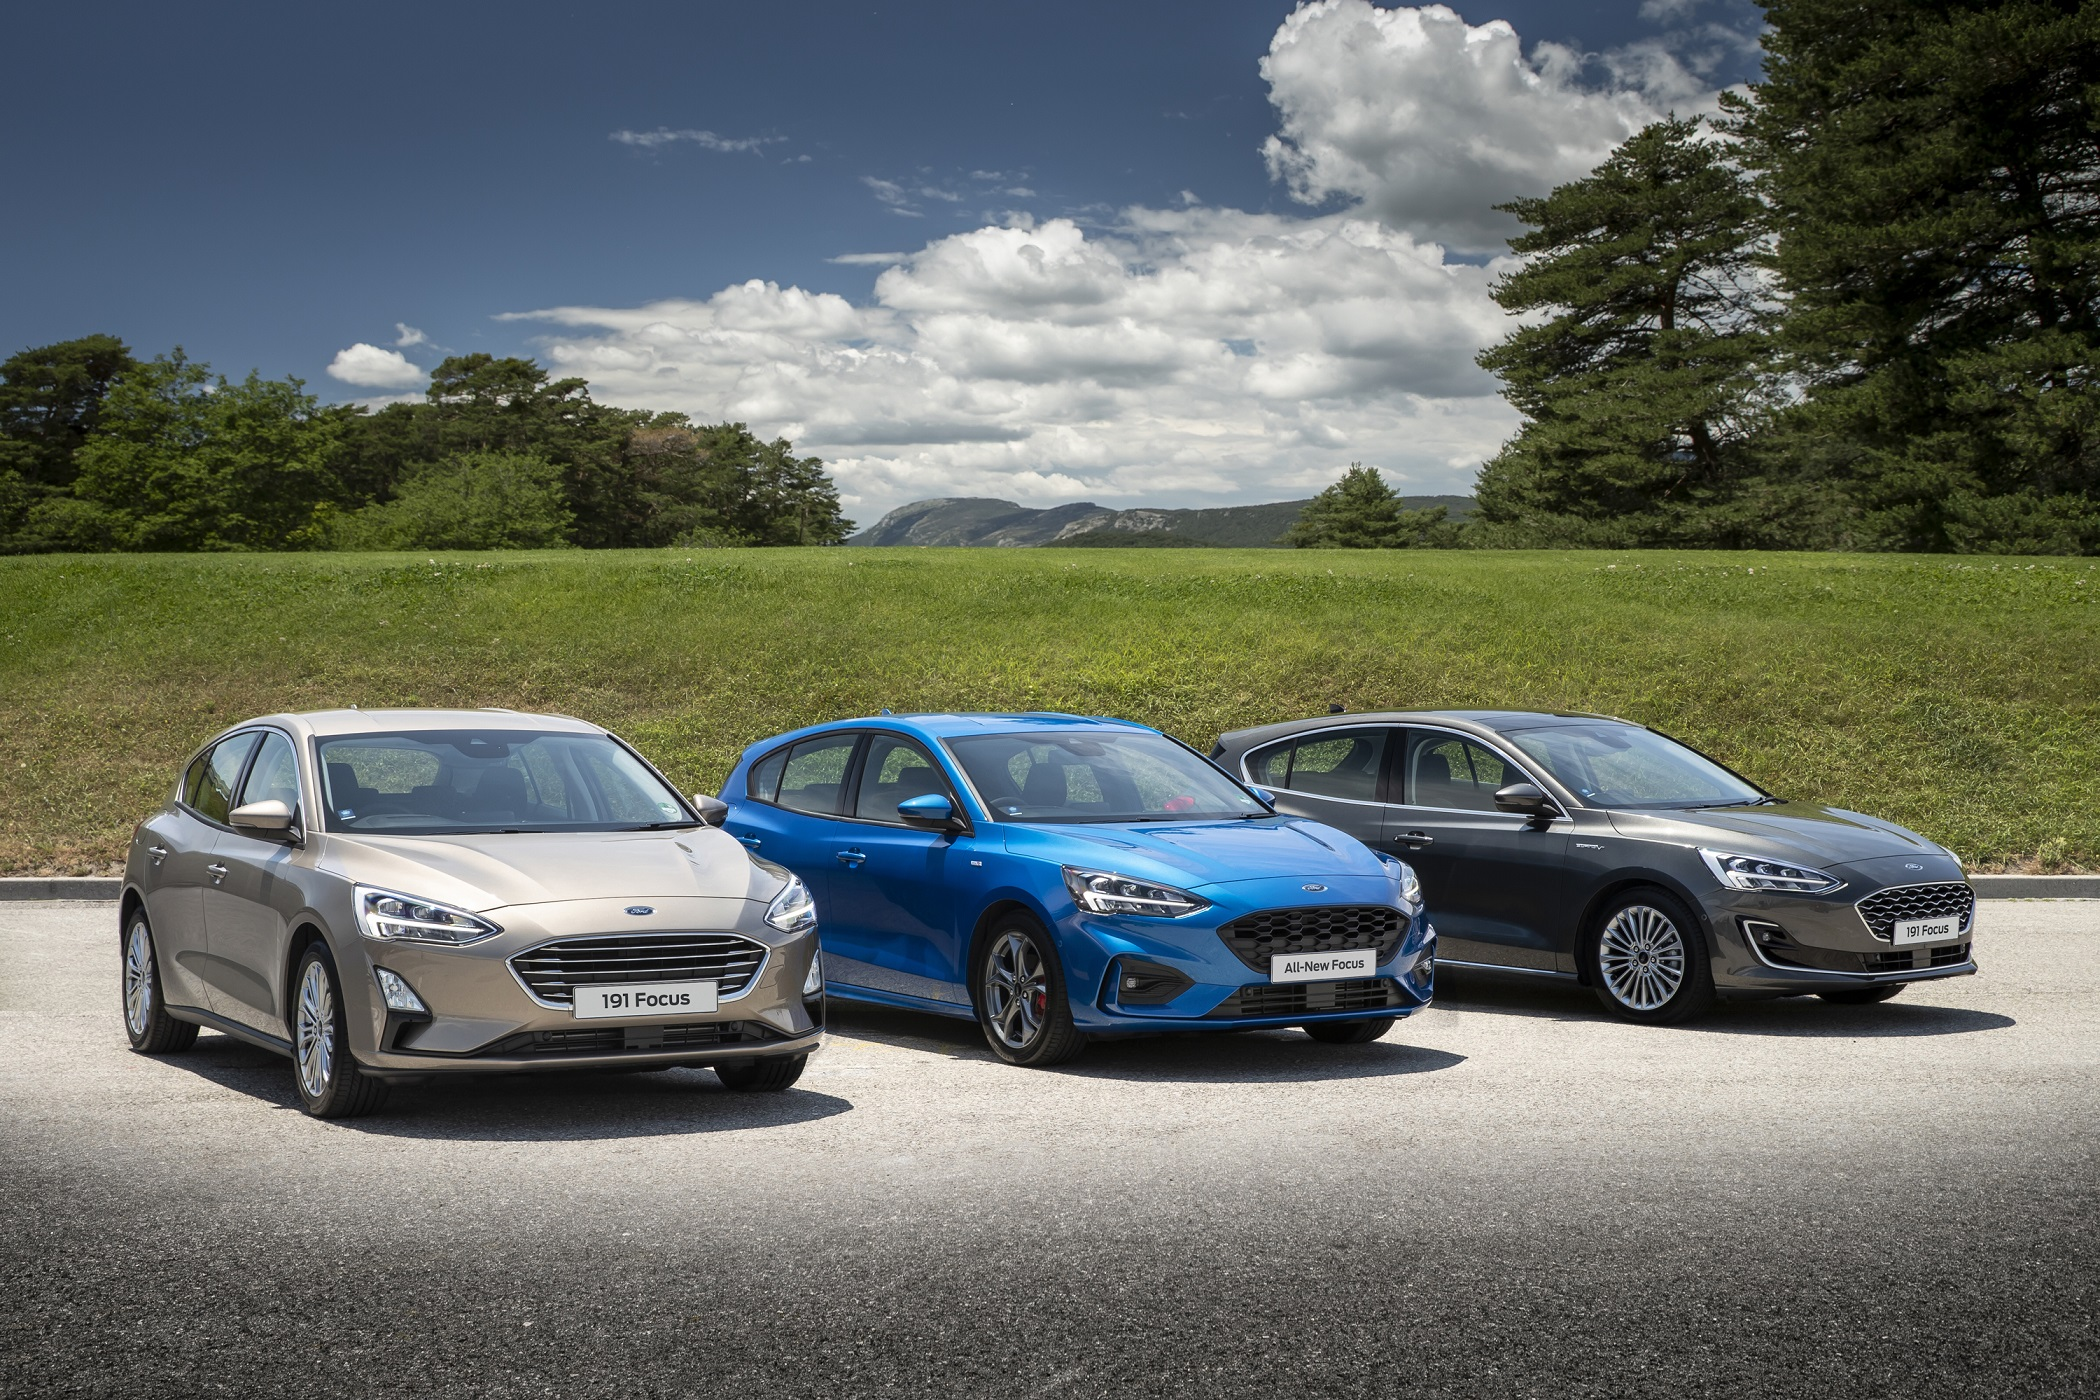 Ford revises prices for all new Focus in Ireland